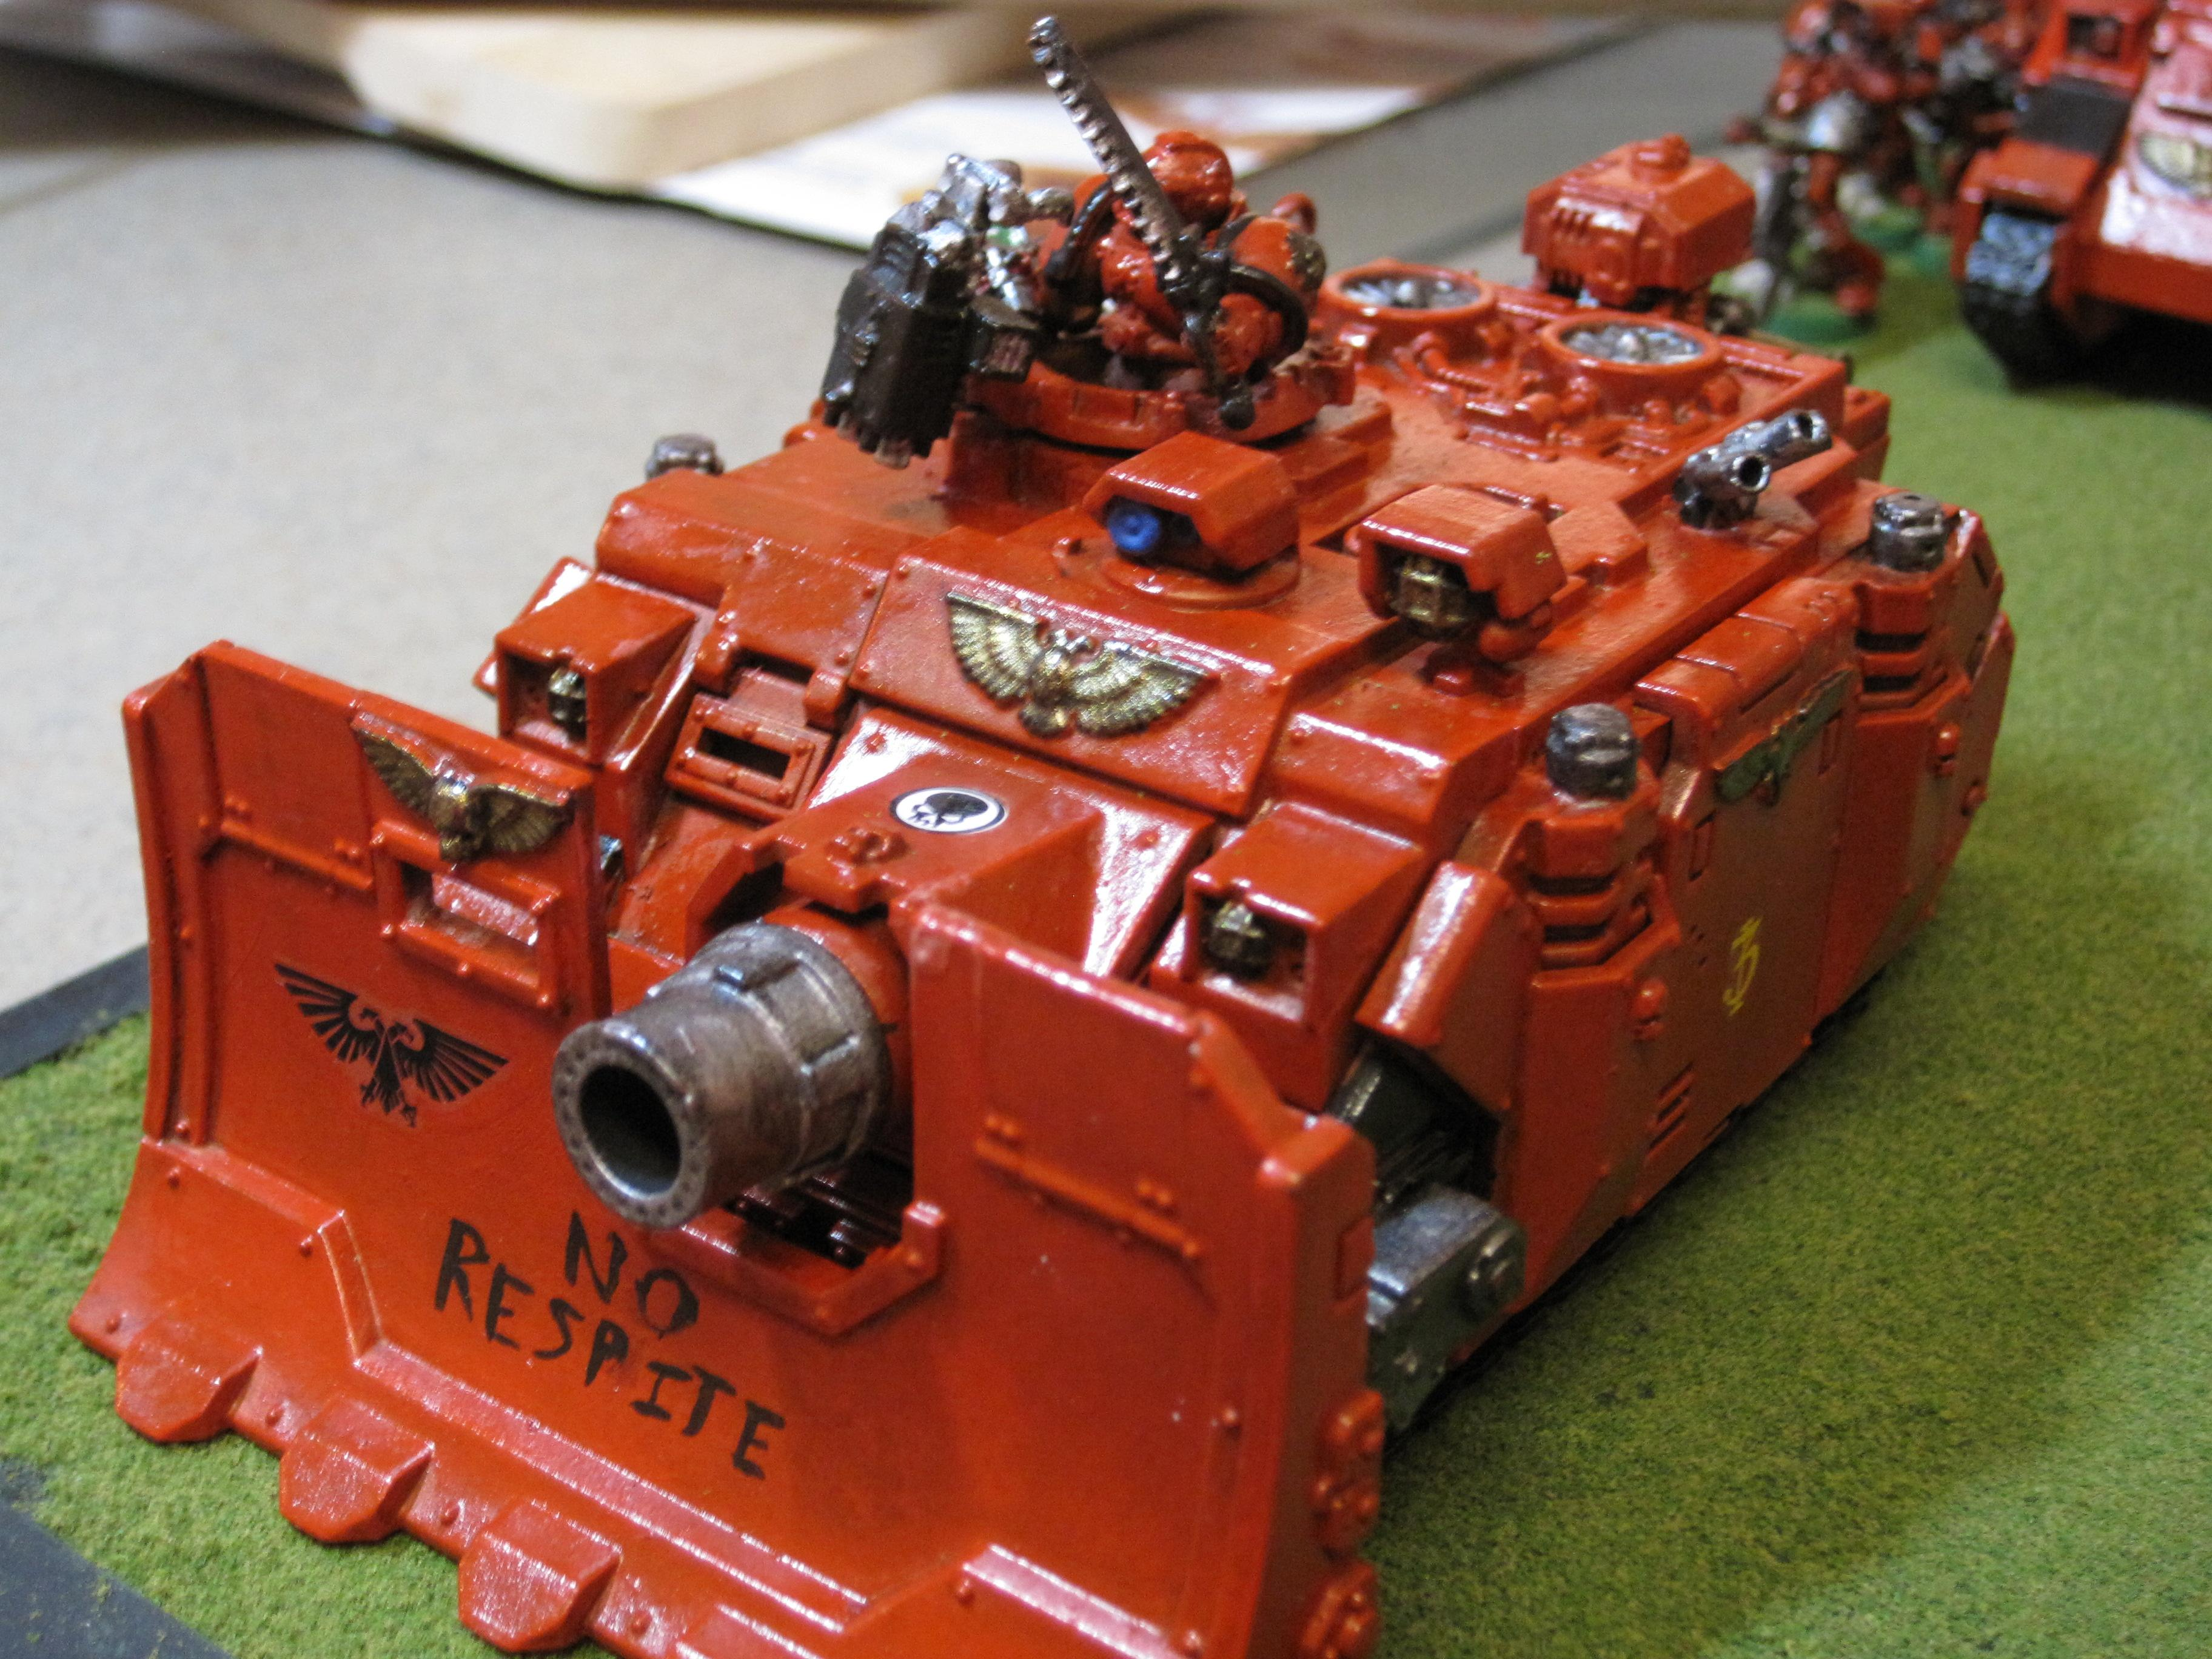 Home Brew, My Old Army, Self Made Chapter, Space Marines, Tank, Vindicator, Warhammer 40,000